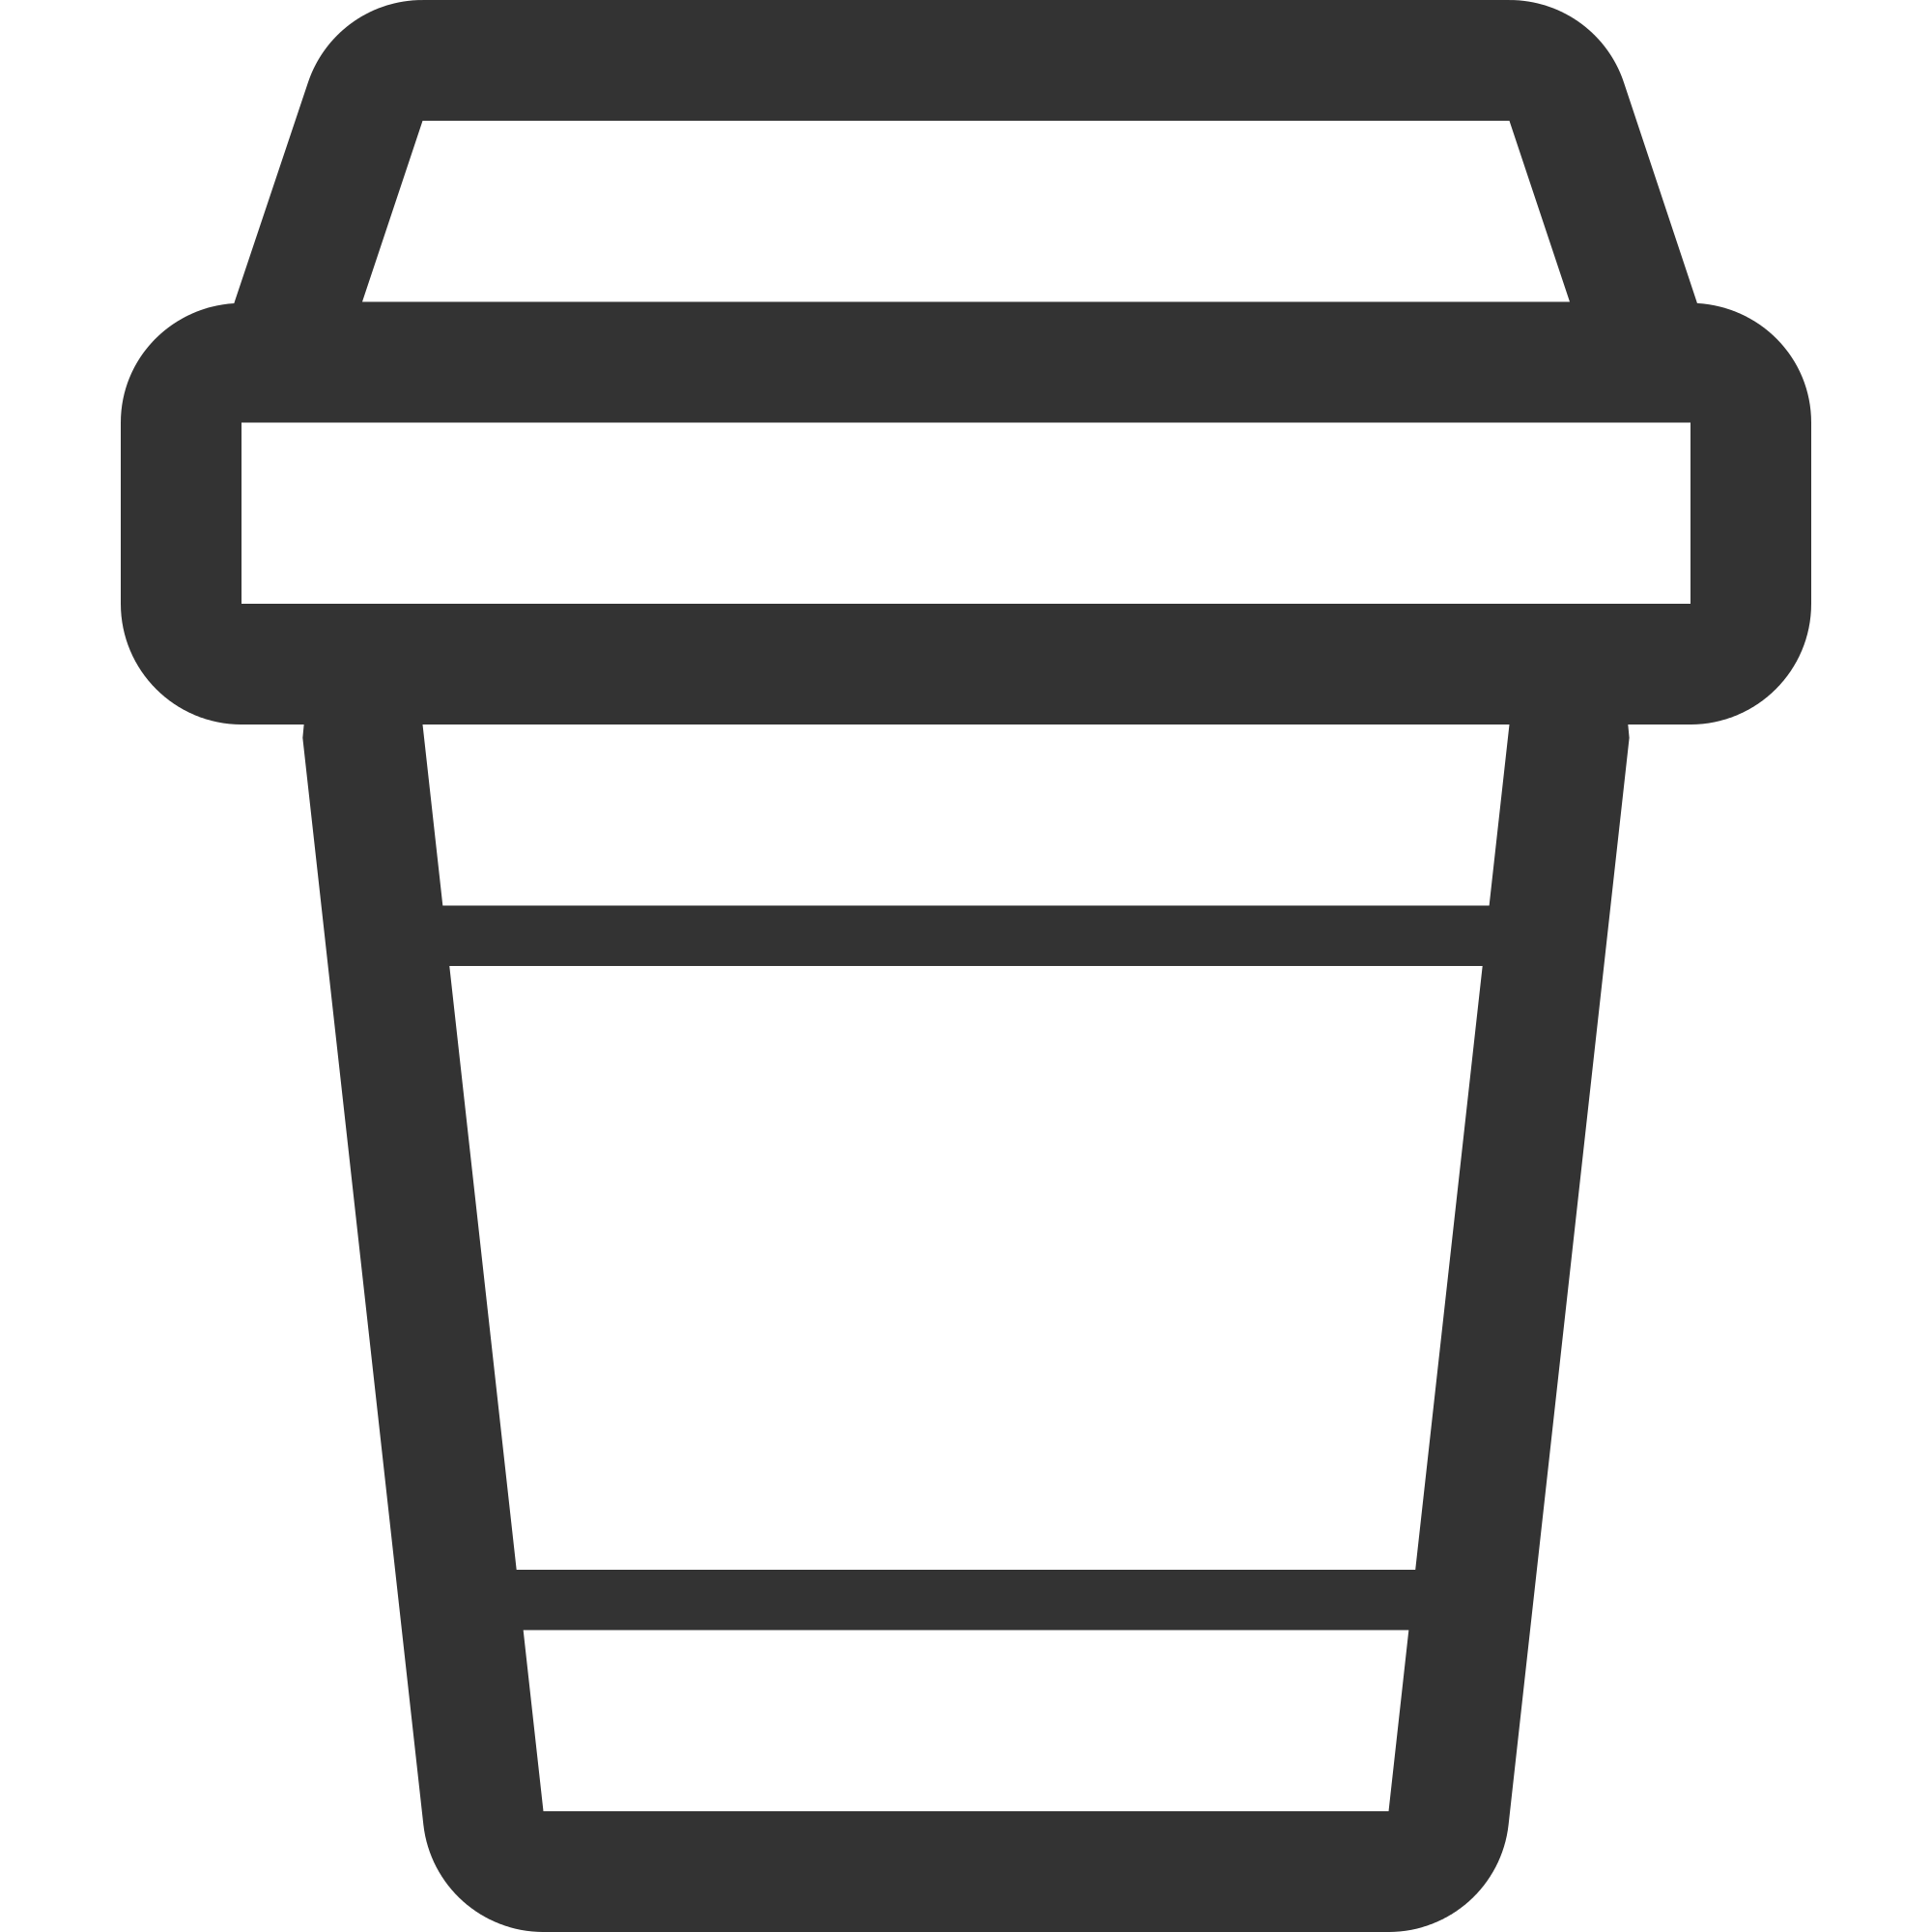 File linecons svg wikimedia. Cup clipart takeaway coffee